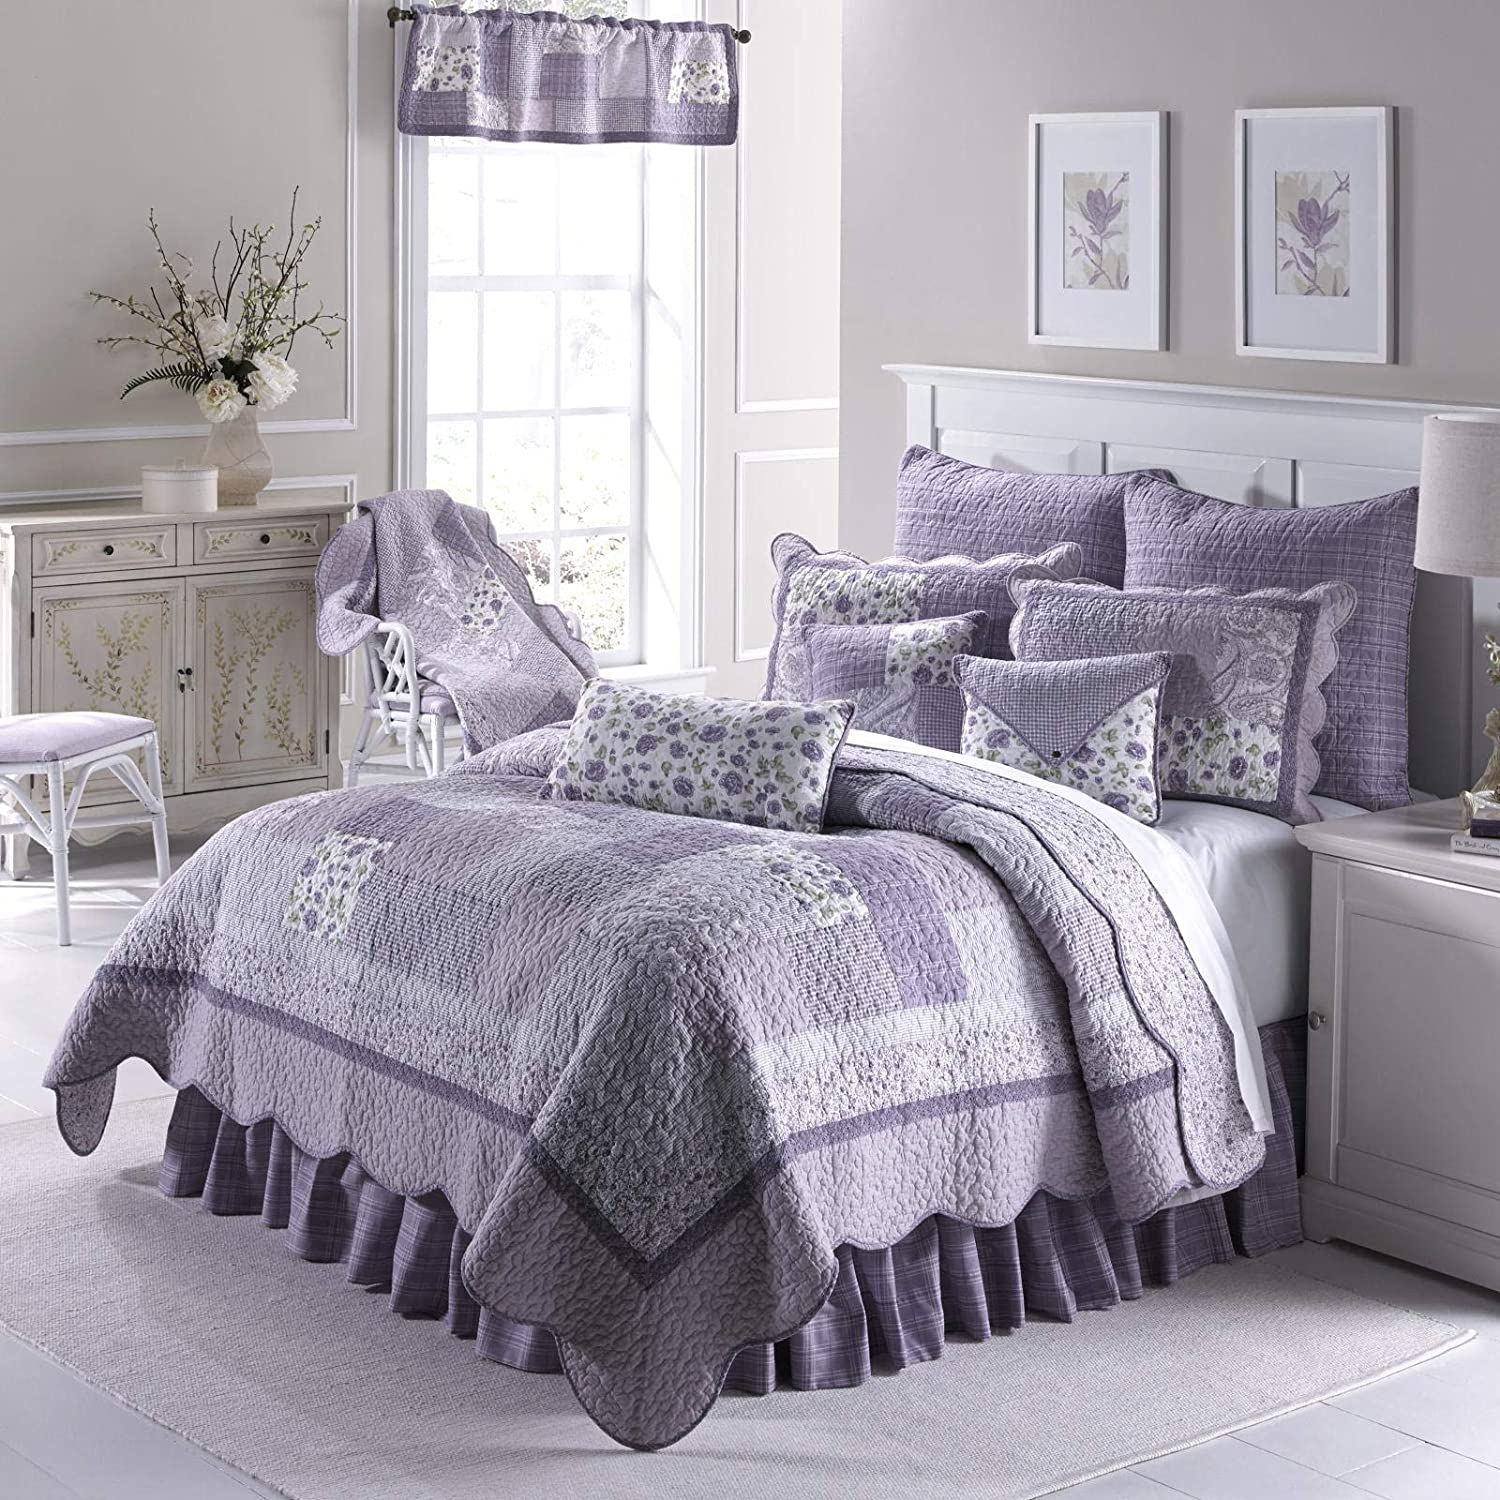 Full/Queen Quilt - Lavender Rose by Donna Sharp - Contemporary Quilt with Patchwork Pattern - Fits Queen Size and Full Size Beds - Machine Washable